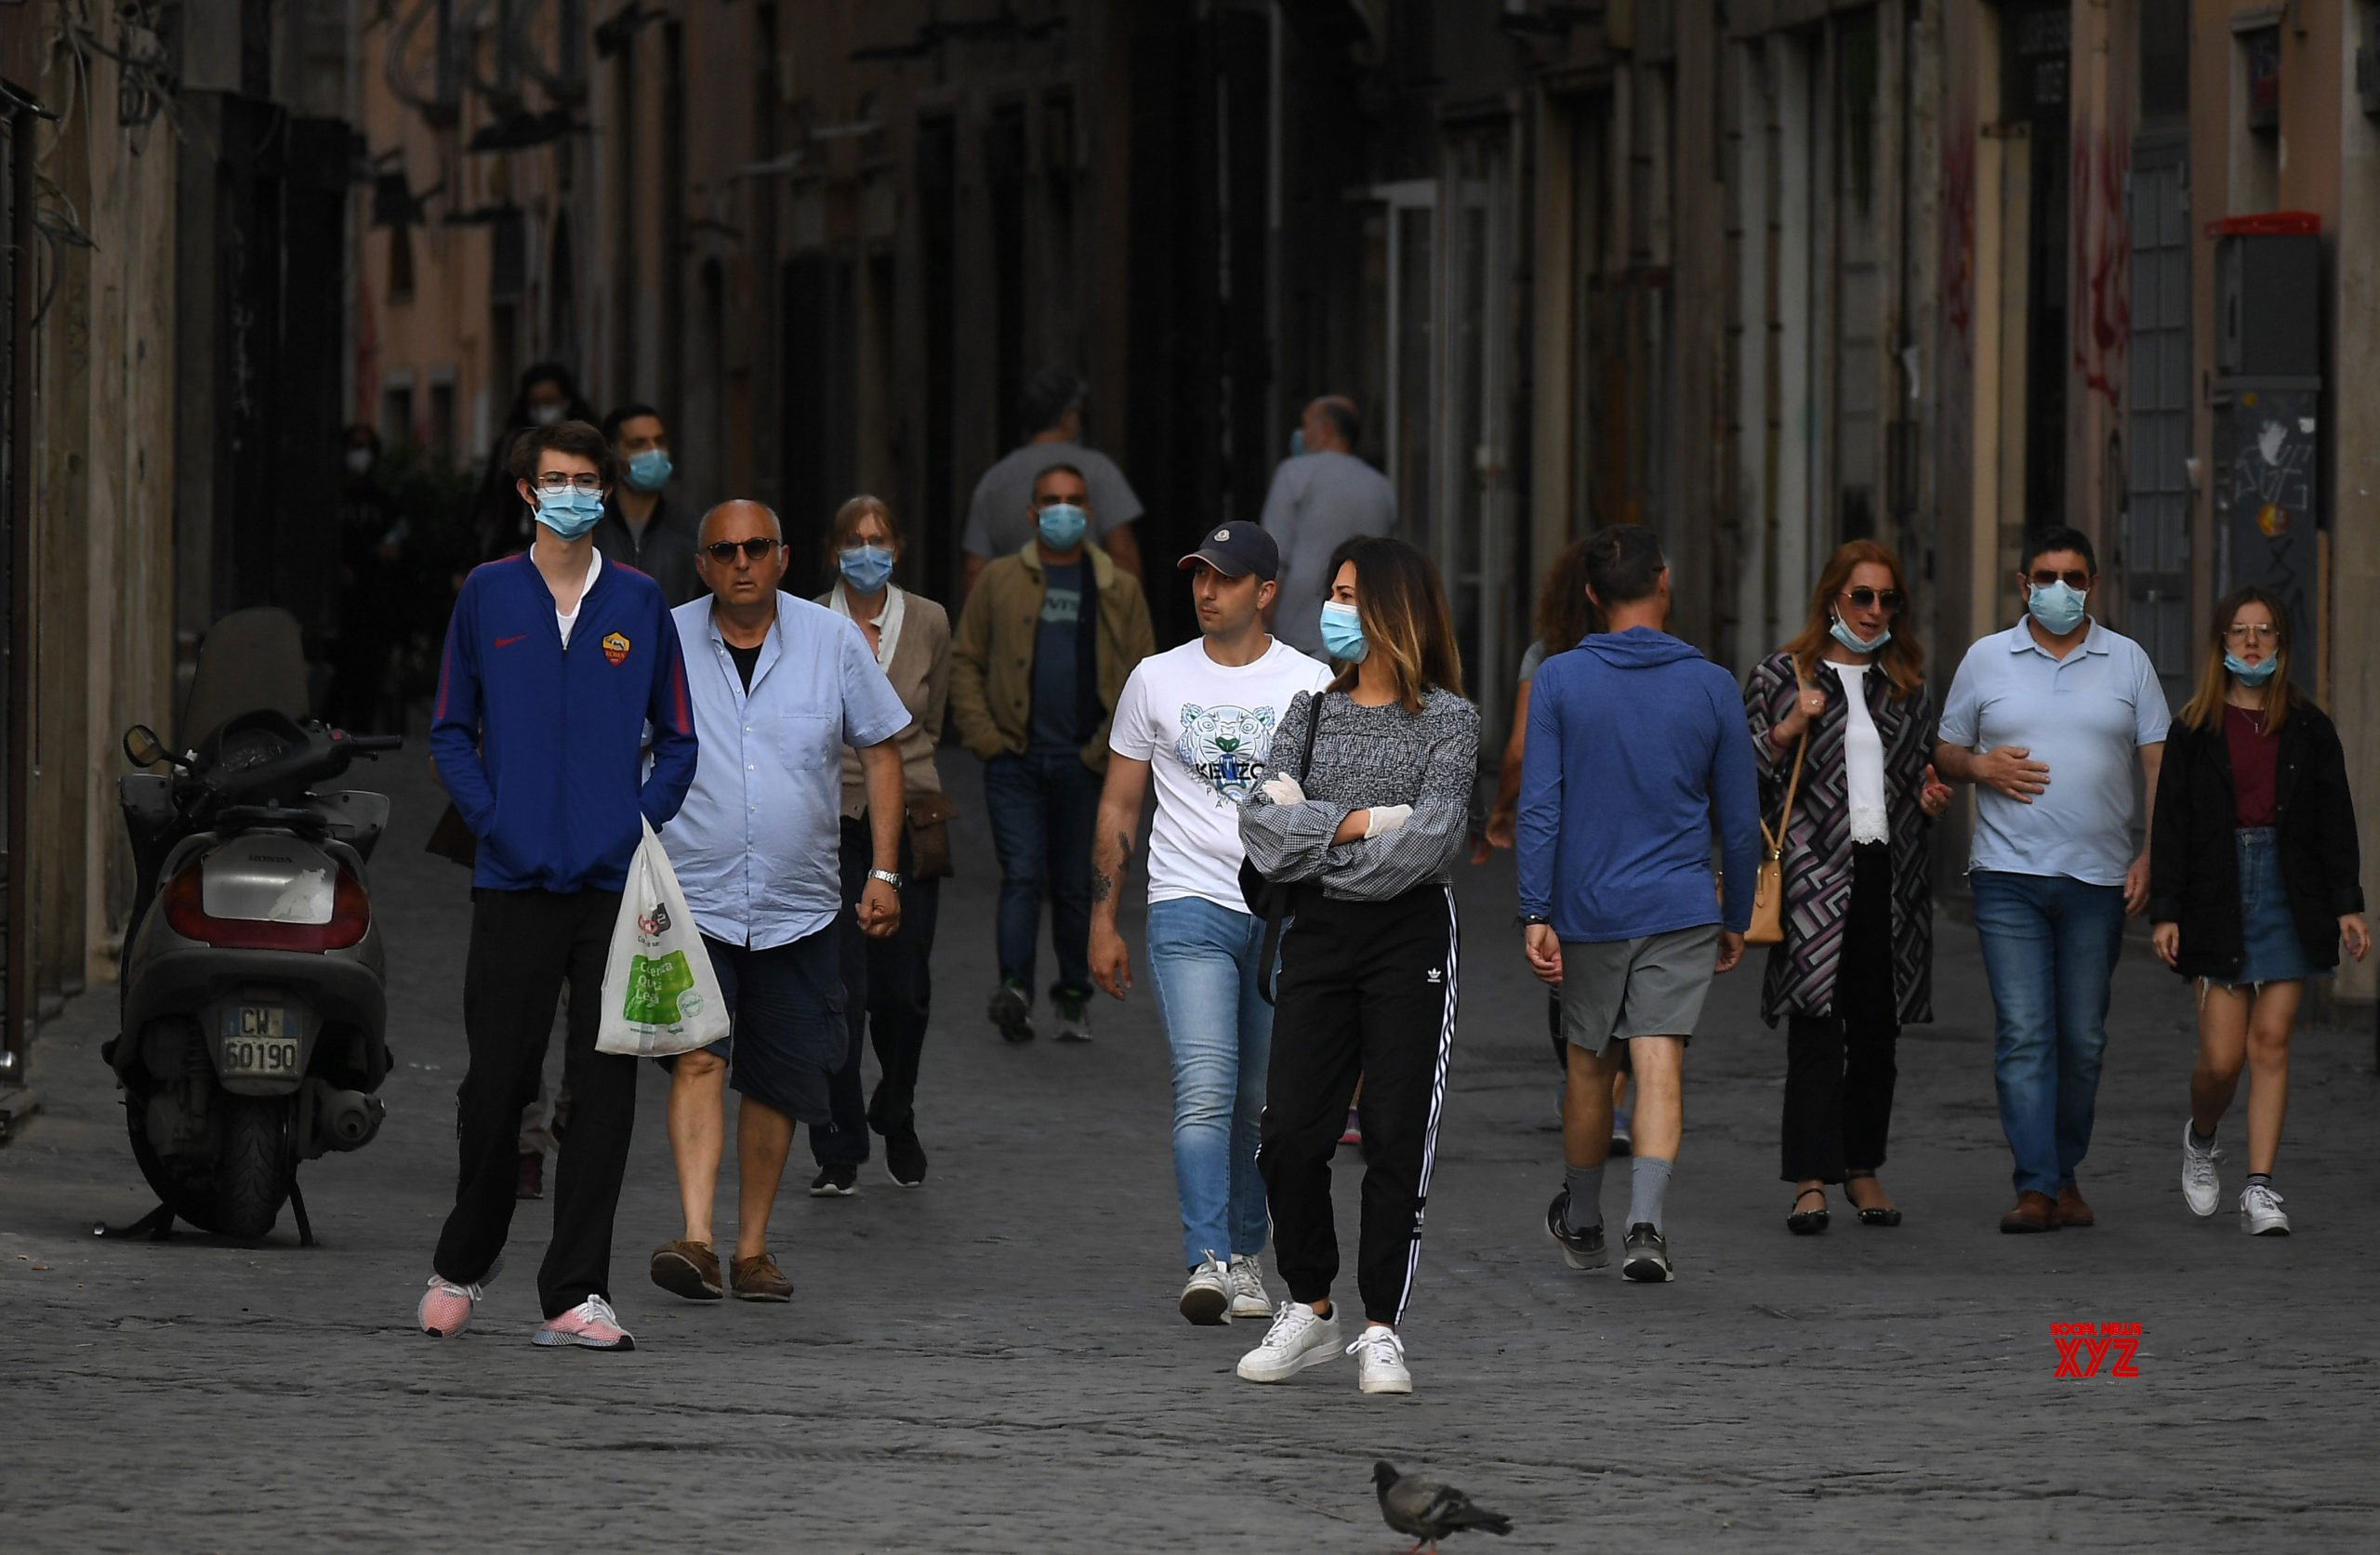 Italy's COVID-19 death toll rises to 32,735